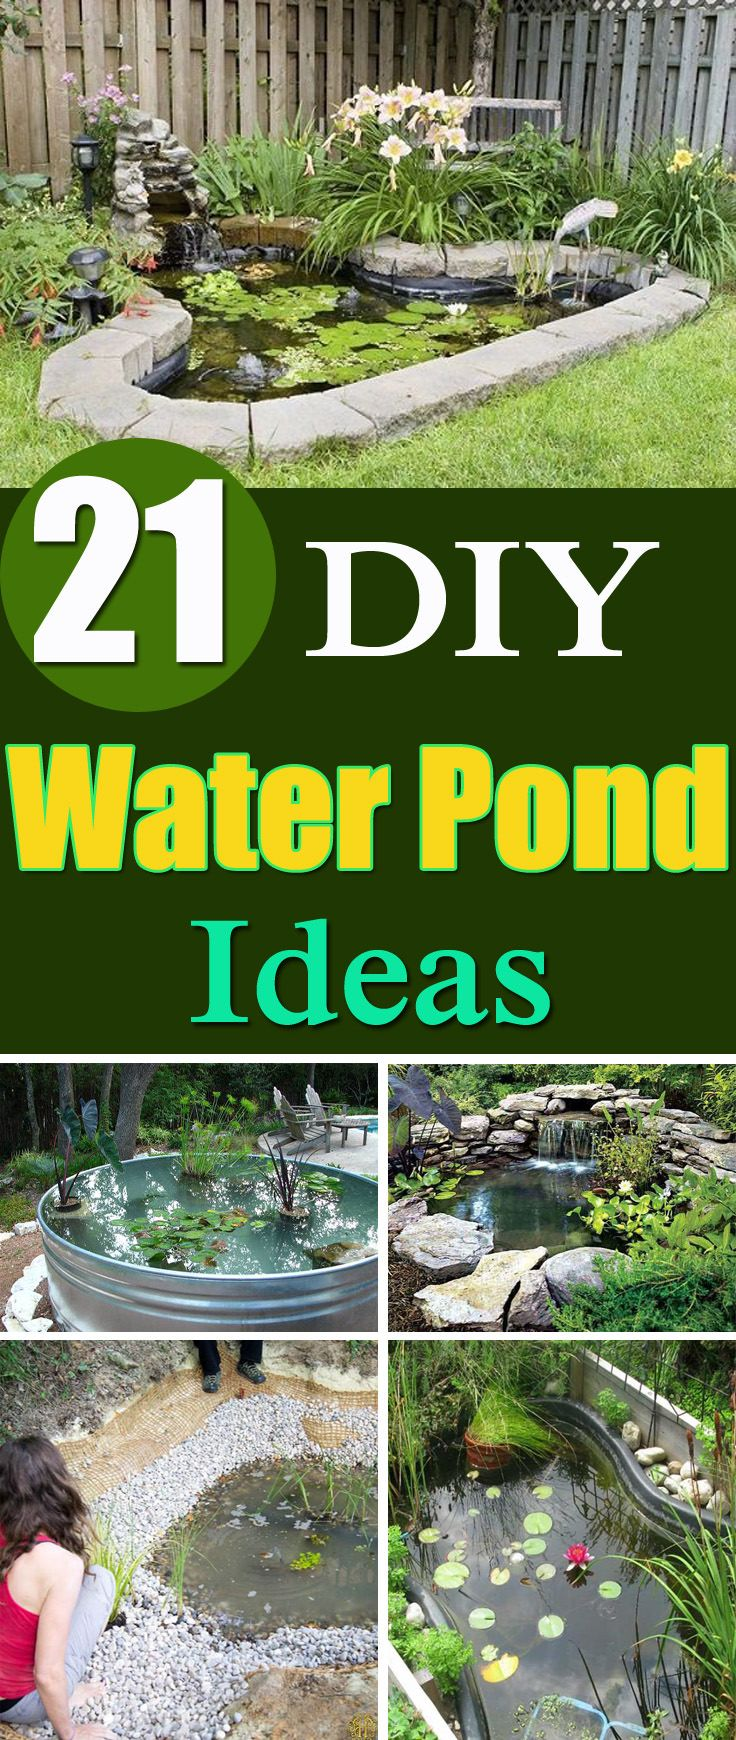 21 DIY Water Pond Ideas is part of Ponds backyard, Pond landscaping, Water features in the garden, Water garden, Diy pond, Diy ponds backyard - If you've got a backyard and adding a water feature is your dream, follow it by trying one of these DIY Water Pond Ideas!